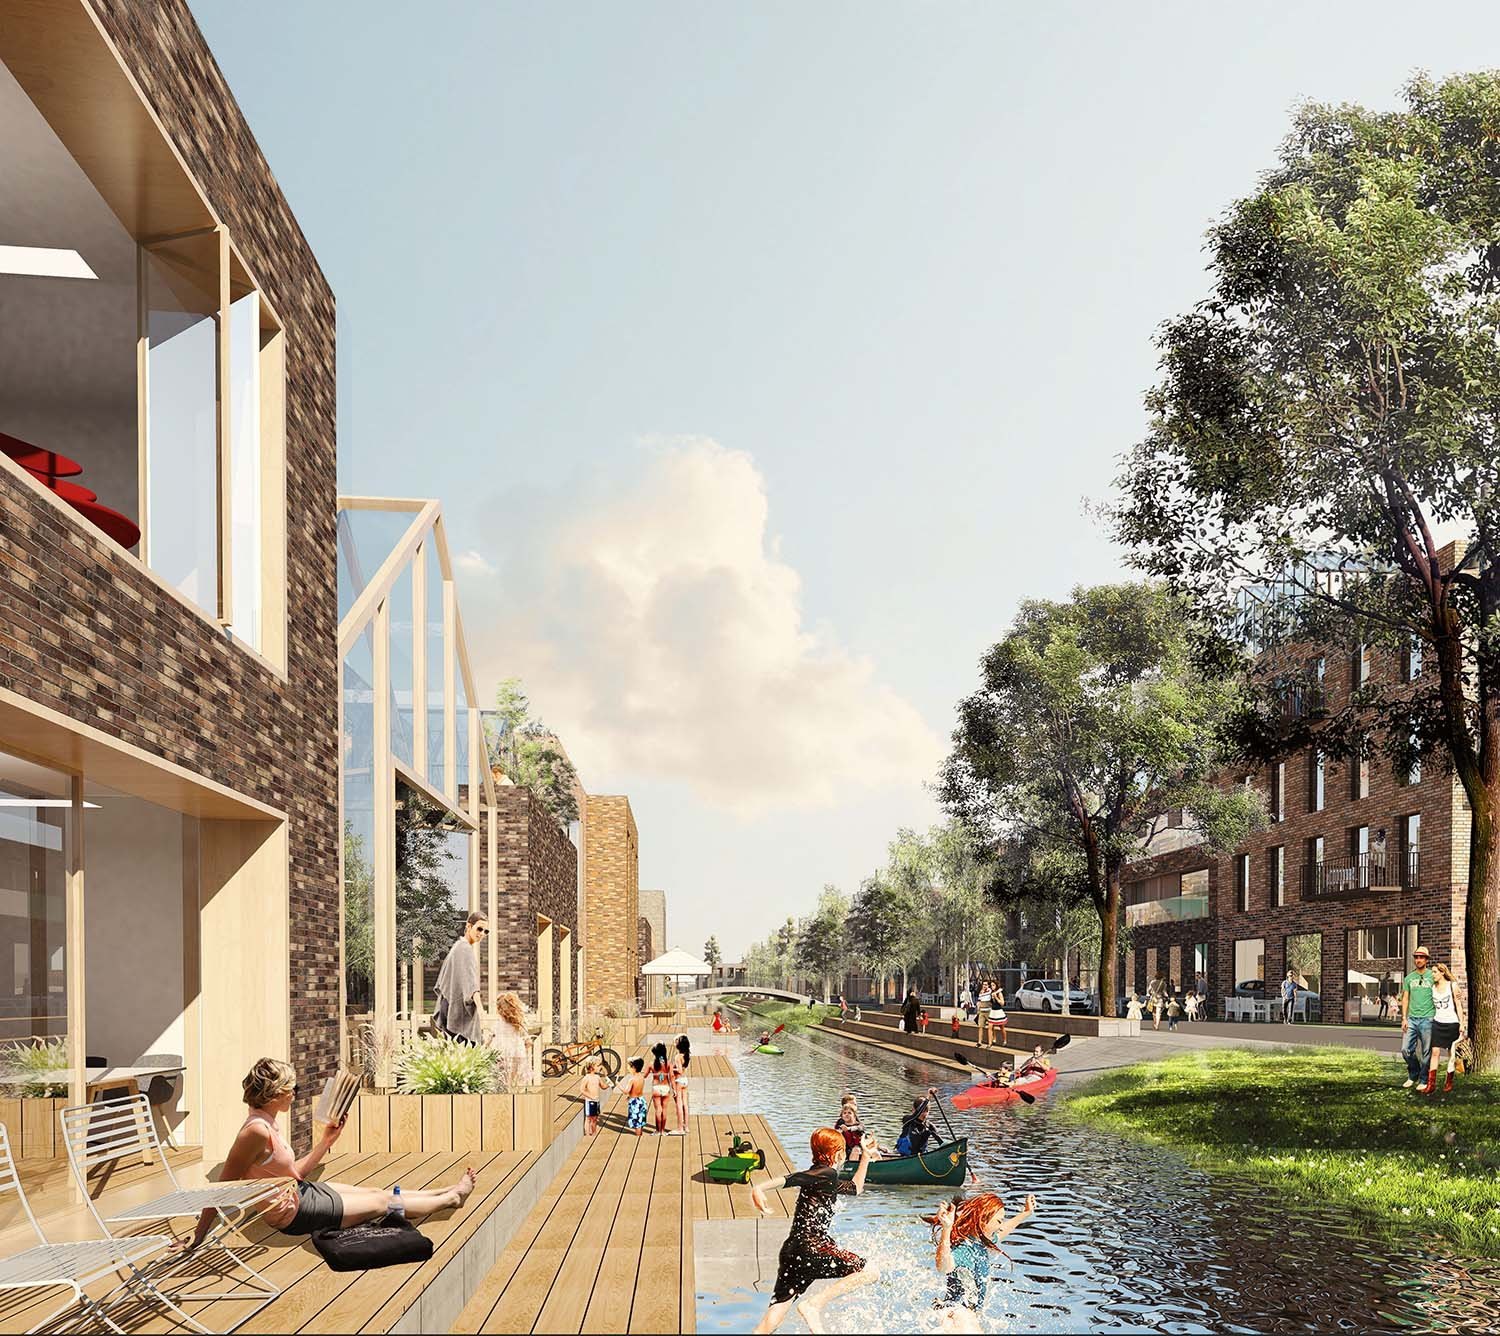 The Connected City - Canal Living © ADEPT KARRES+BRANDS